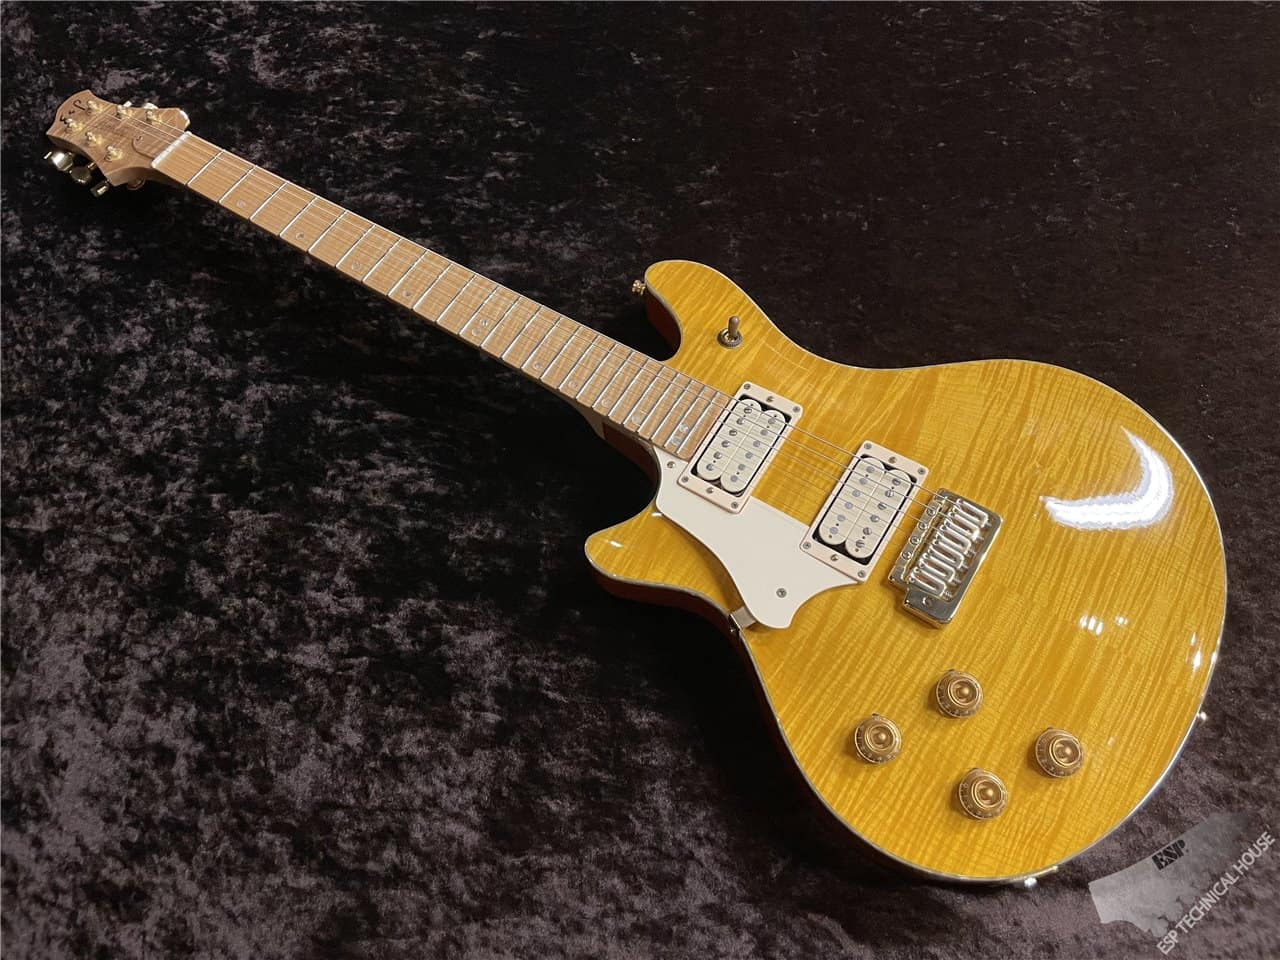 【即納可能/中古品】ESP(イーエスピー) ESP ORDER POTBELLY-TR L/H【FLAME MAPLE TOP】茶水店